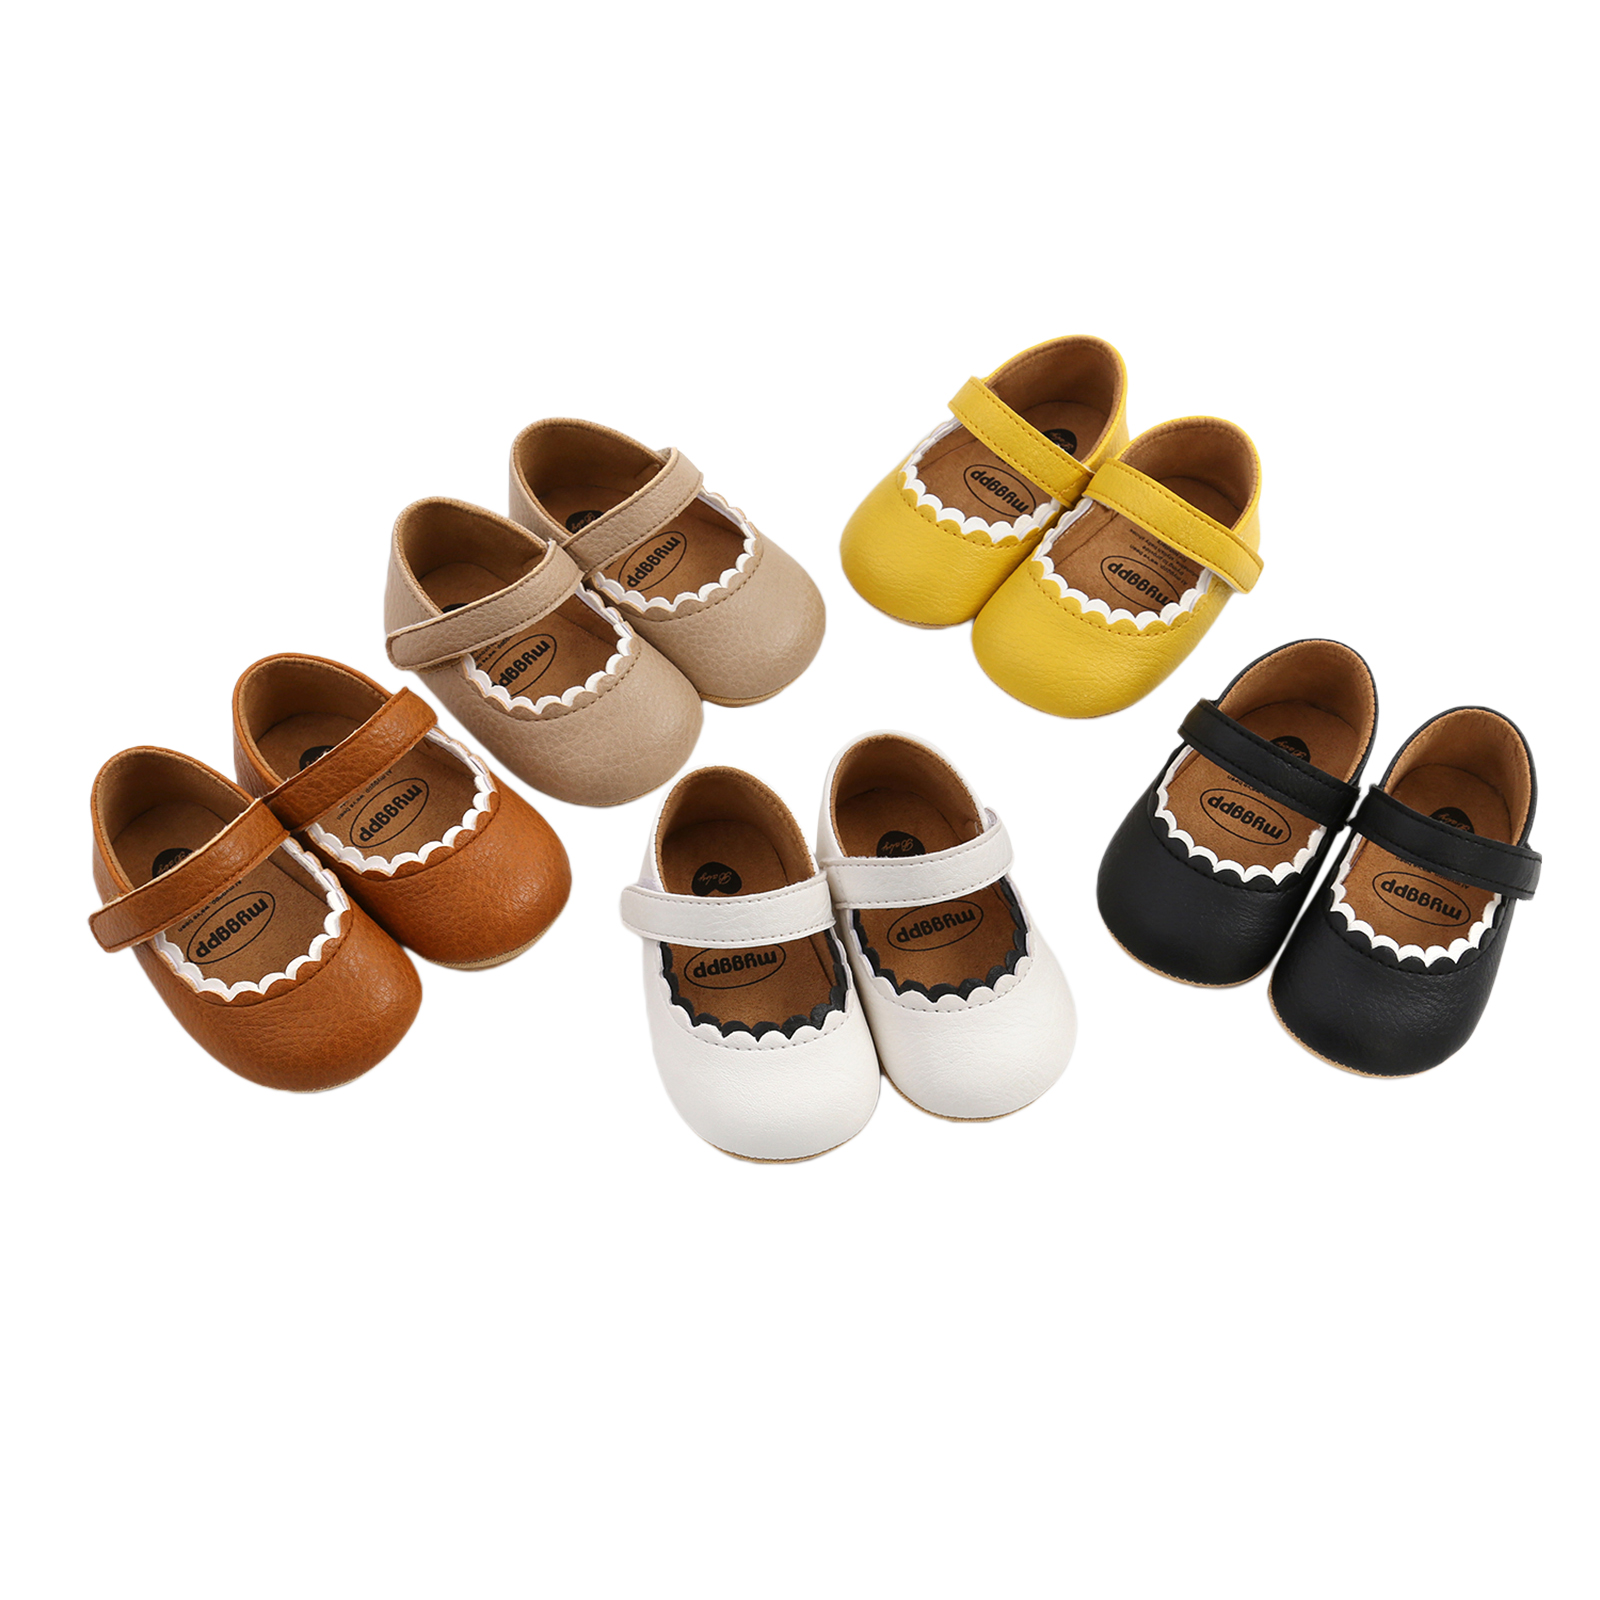 Newborn Toddler Prewalker With Hook And Loop Princess Shoes Convenient To Wear And Take Off Wear-Resistant Soft And Comfortable